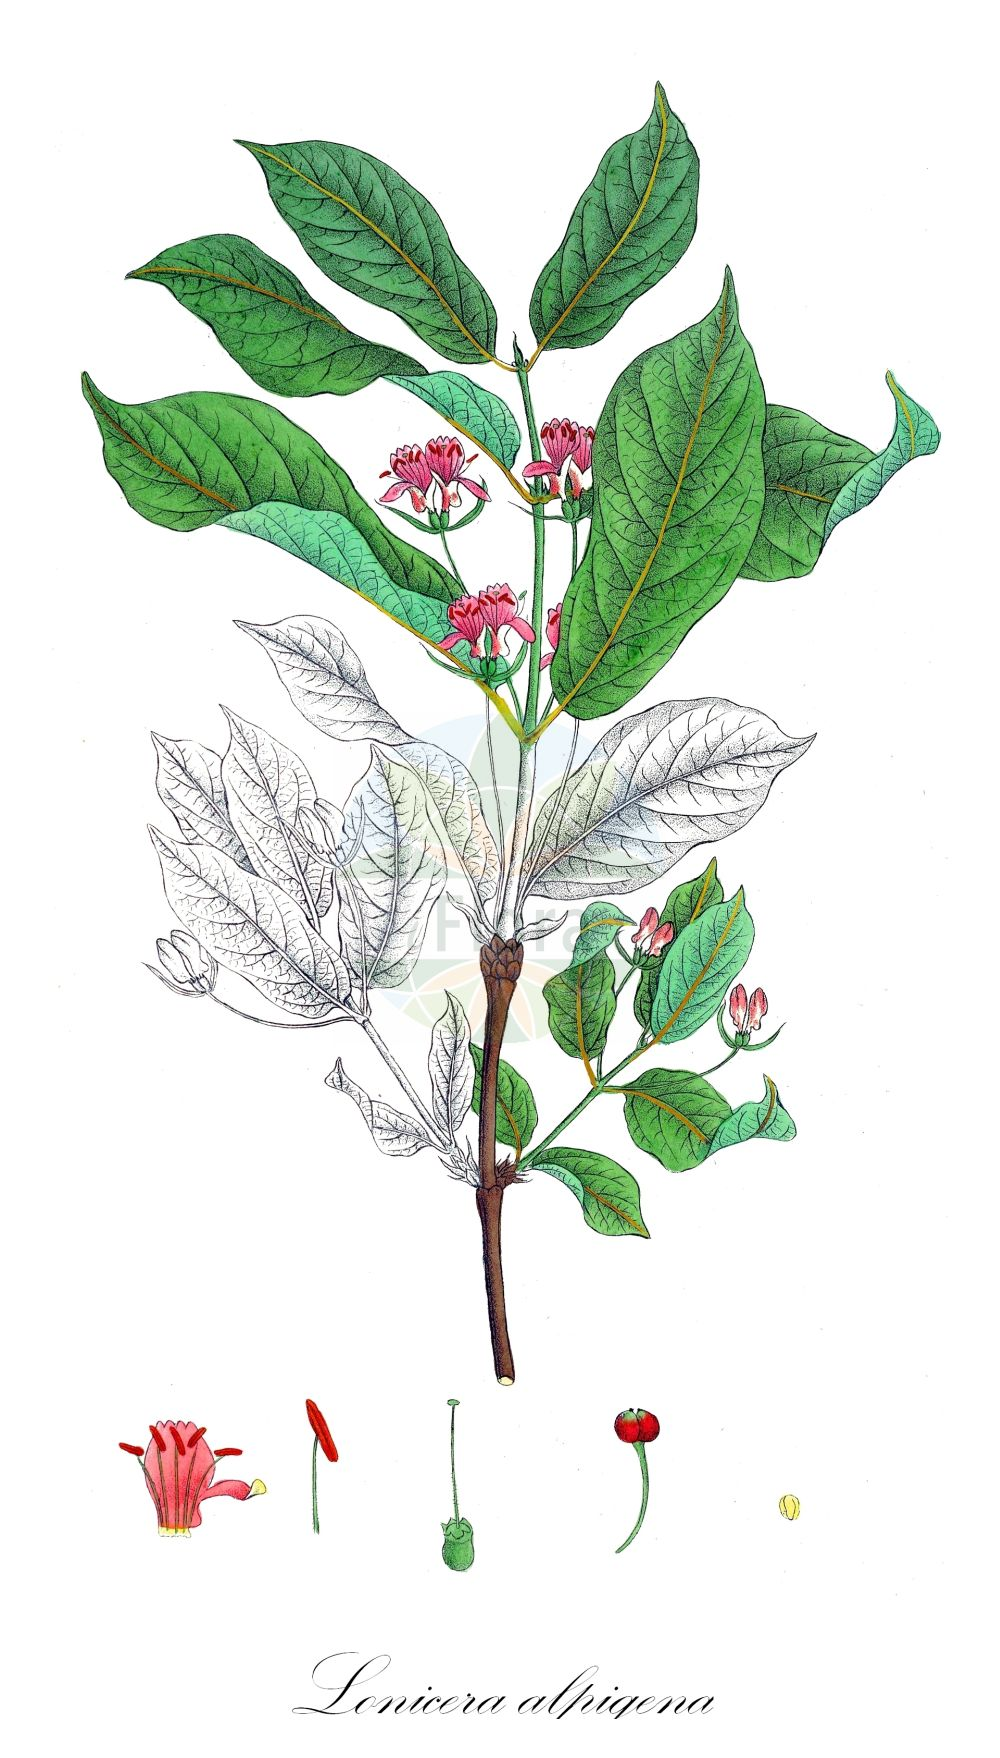 Historische Abbildung von Lonicera alpigena (Alpen-Heckenkirsche - Alpine Honeysuckle). Das Bild zeigt Blatt, Bluete, Frucht und Same. ---- Historical Drawing of Lonicera alpigena (Alpen-Heckenkirsche - Alpine Honeysuckle).The image is showing leaf, flower, fruit and seed.(Lonicera alpigena,Alpen-Heckenkirsche,Alpine Honeysuckle,Alpen-Geissblatt,Cherry Woodbine,Lonicera,Heckenkirsche,Honeysuckle,Caprifoliaceae,Geissblattgewaechse,Honeysuckle family,Blatt,Bluete,Frucht,Same,leaf,flower,fruit,seed,Krebs (1826))